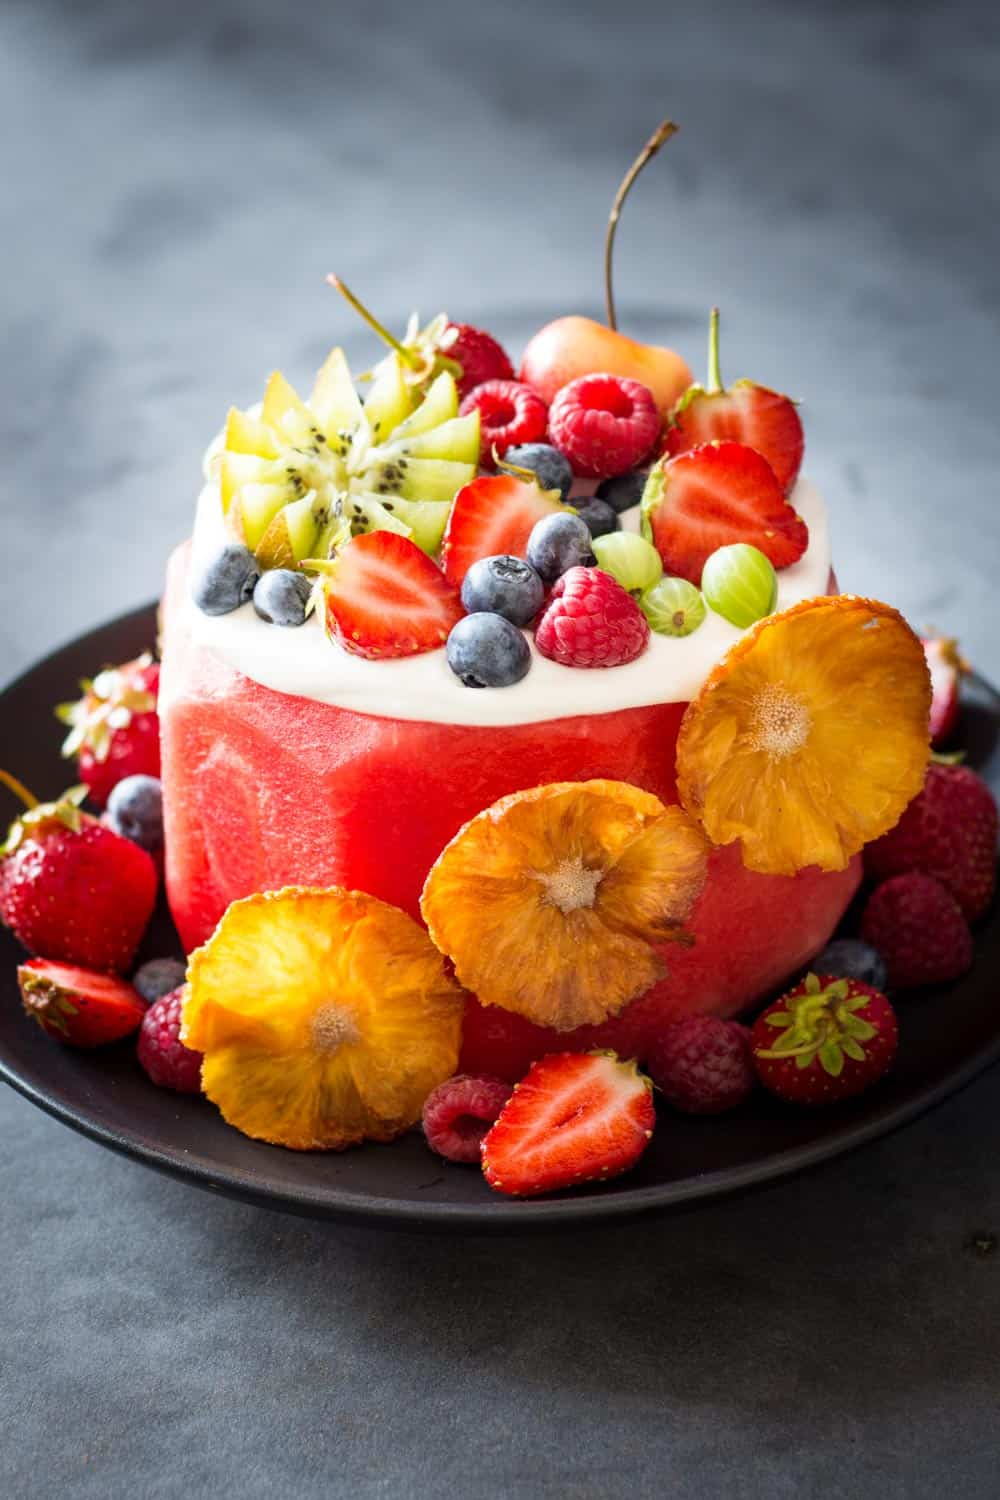 There Is No Better Summer Birthday Cake Or Dessert In General Than This Vegan Watermelon